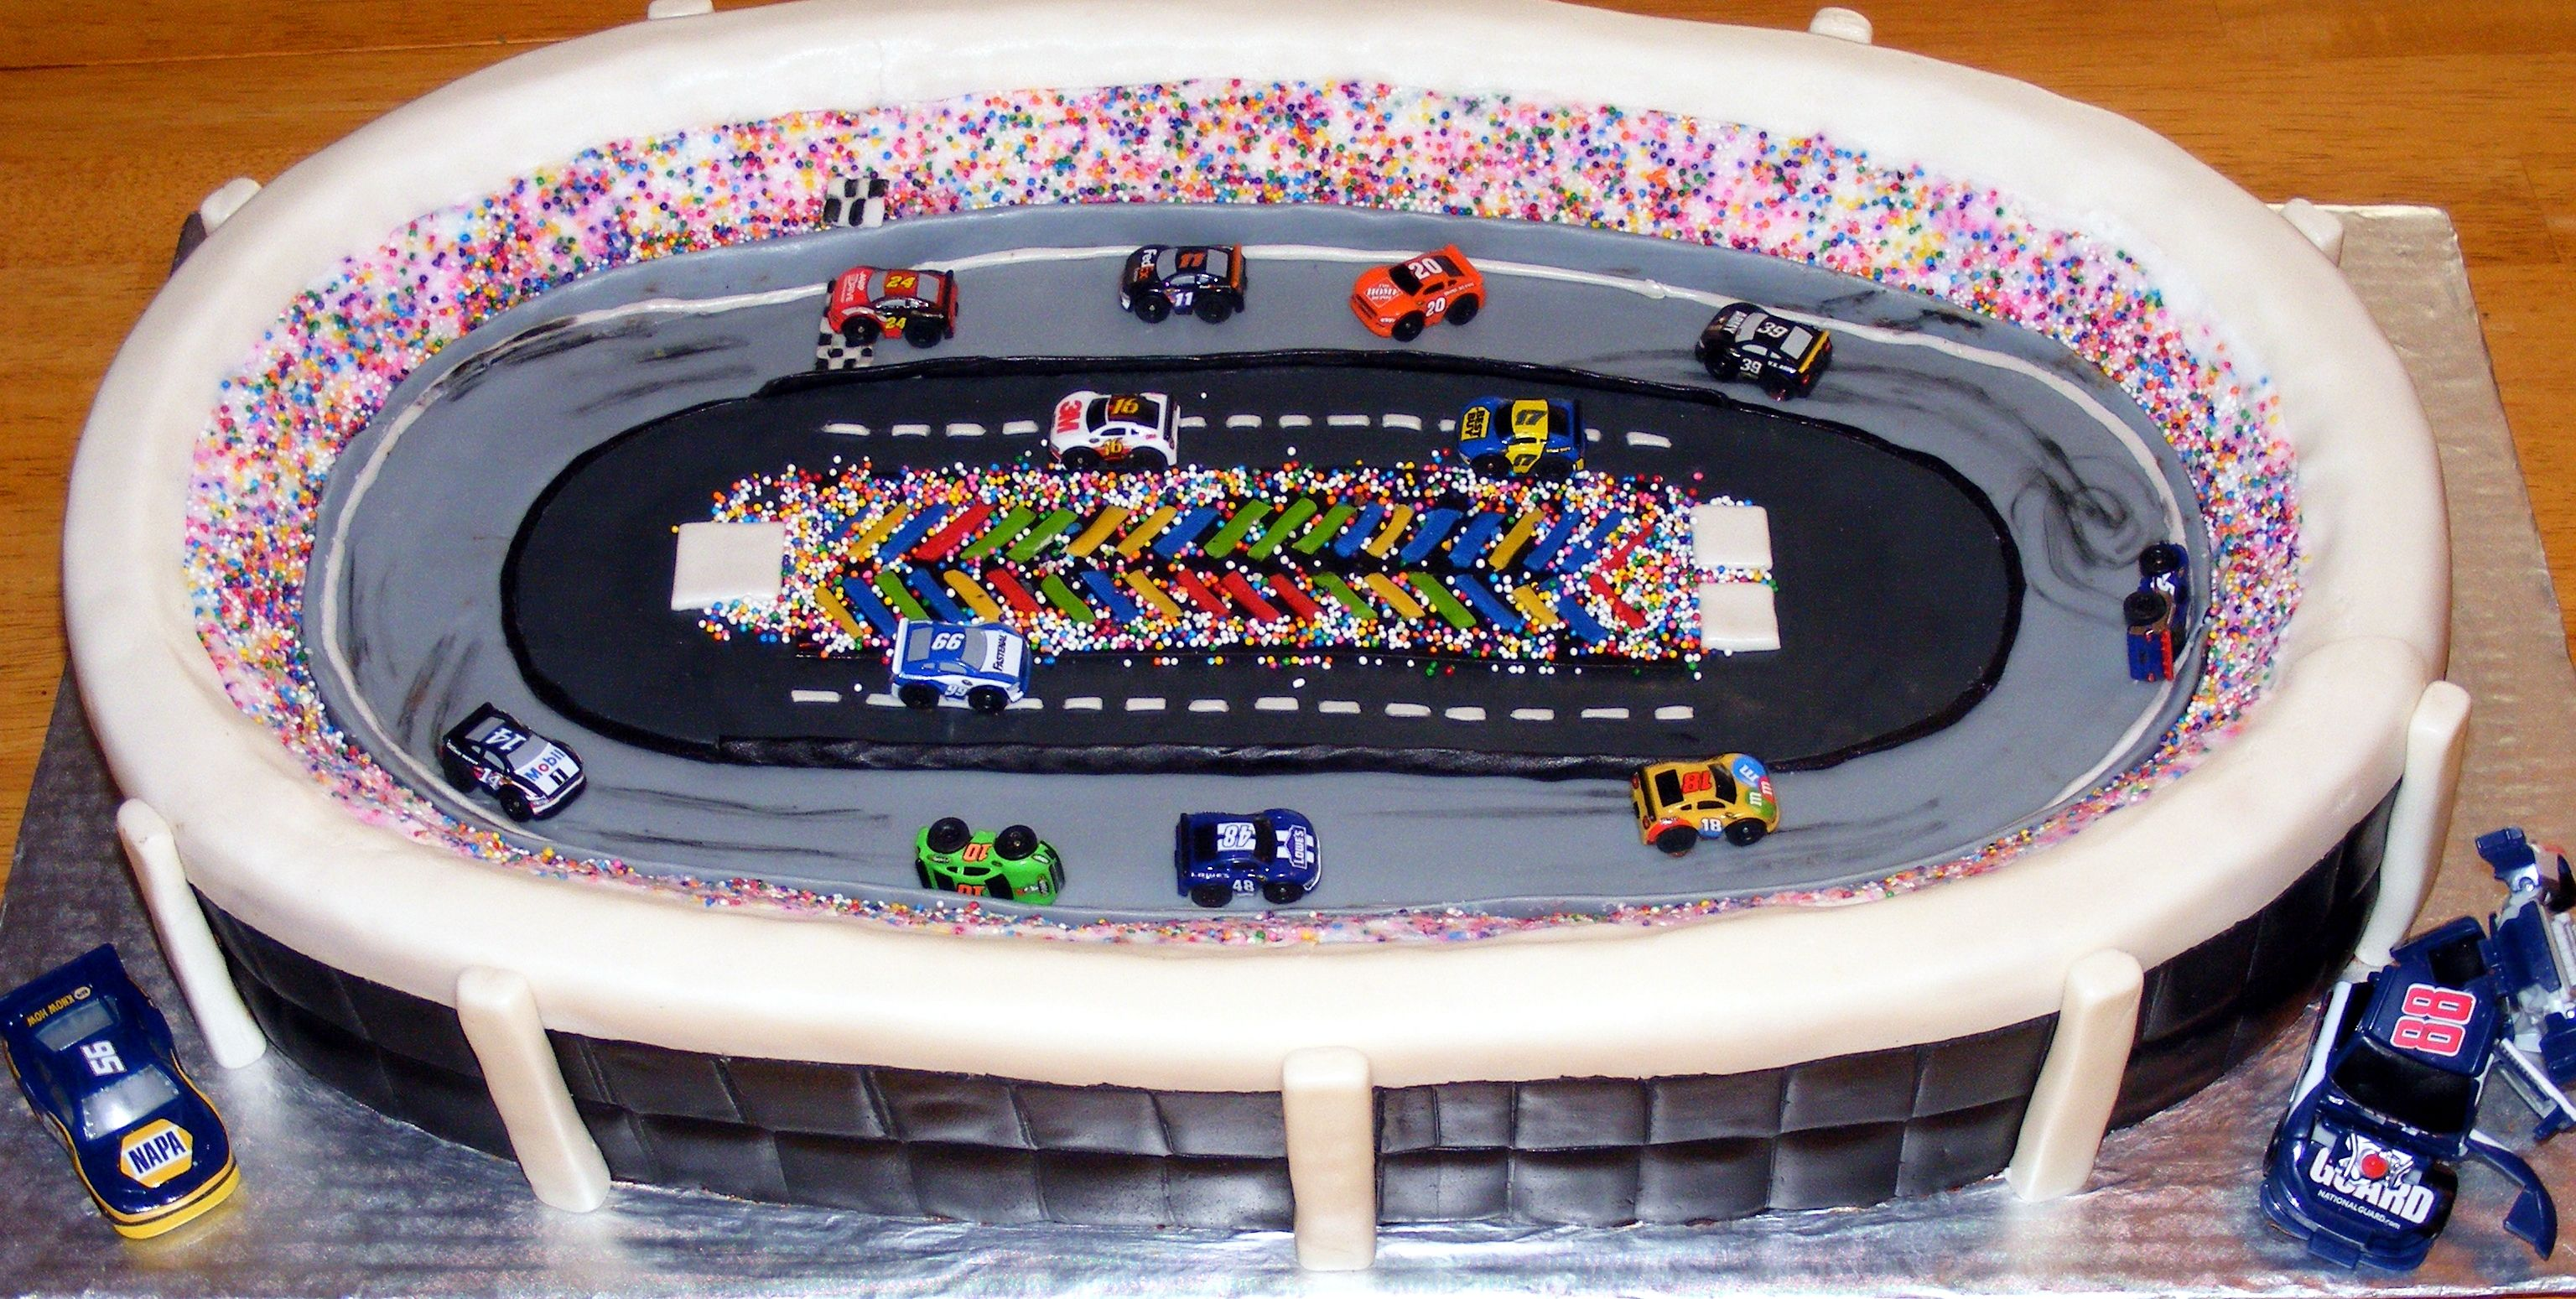 Nascar Cake - Chocolate And Icing 2 13x9 Cakes Side